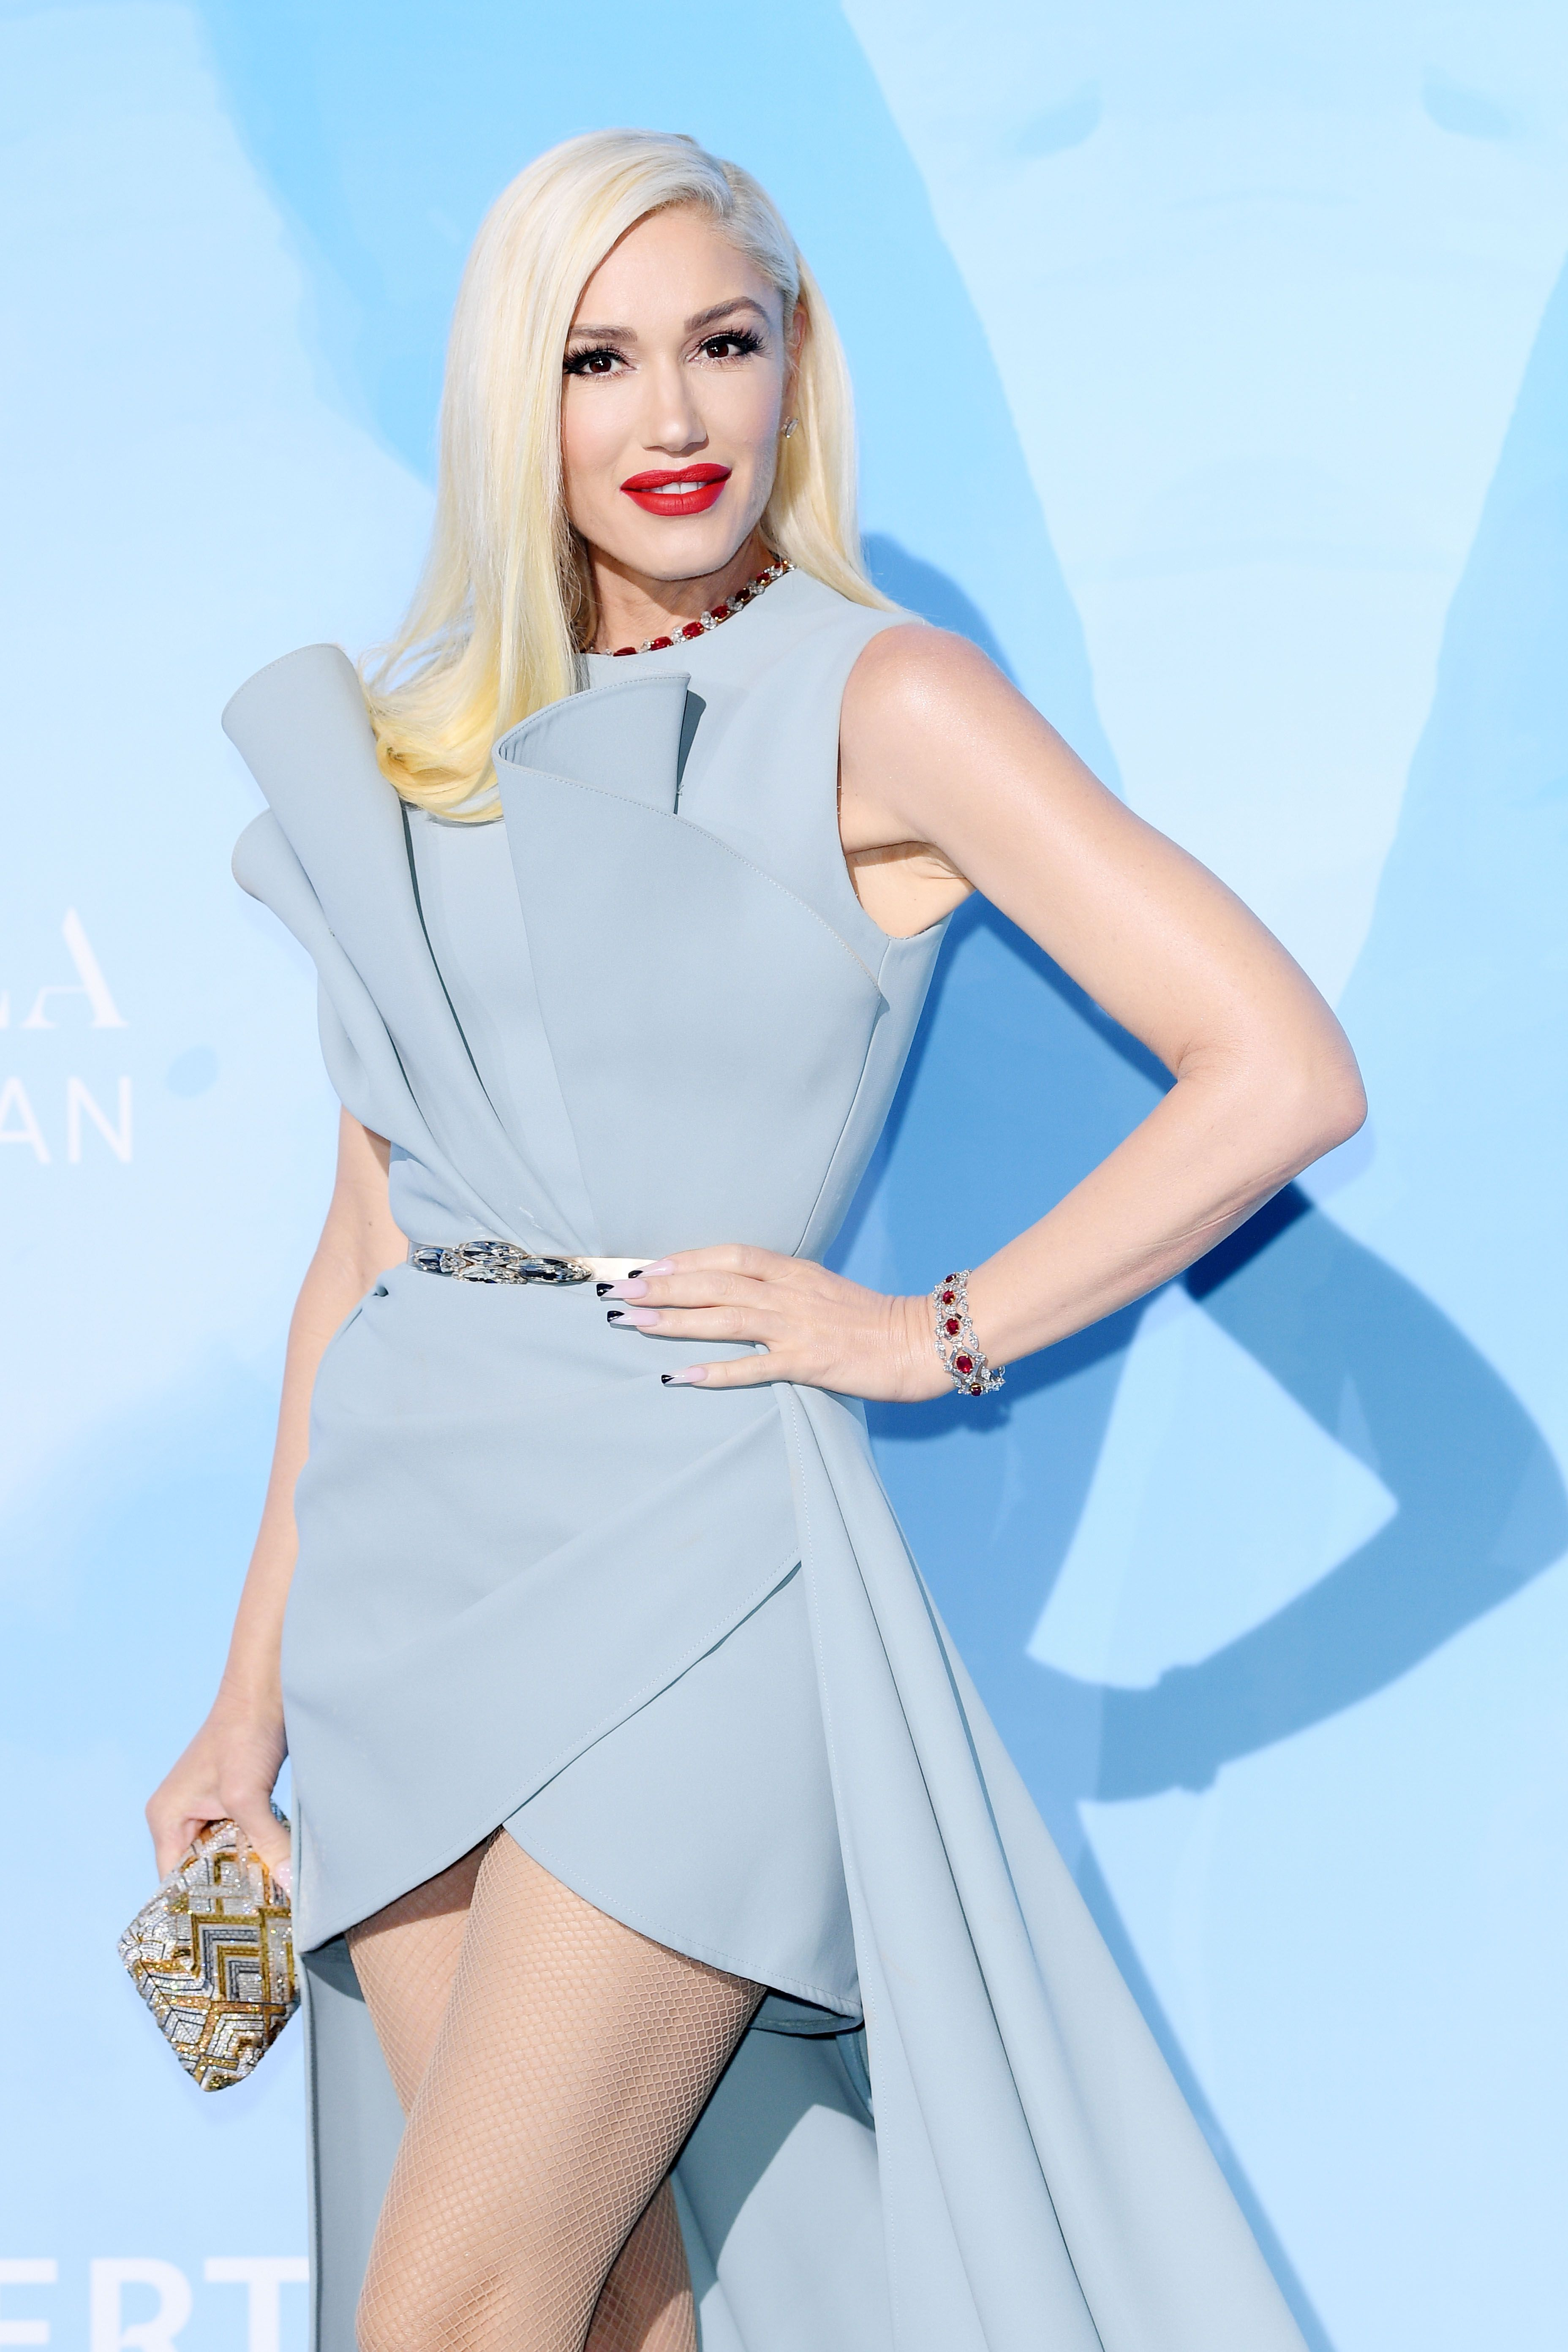 40 Gwen Stefani-Approved Health Habits You Should Totally Steal